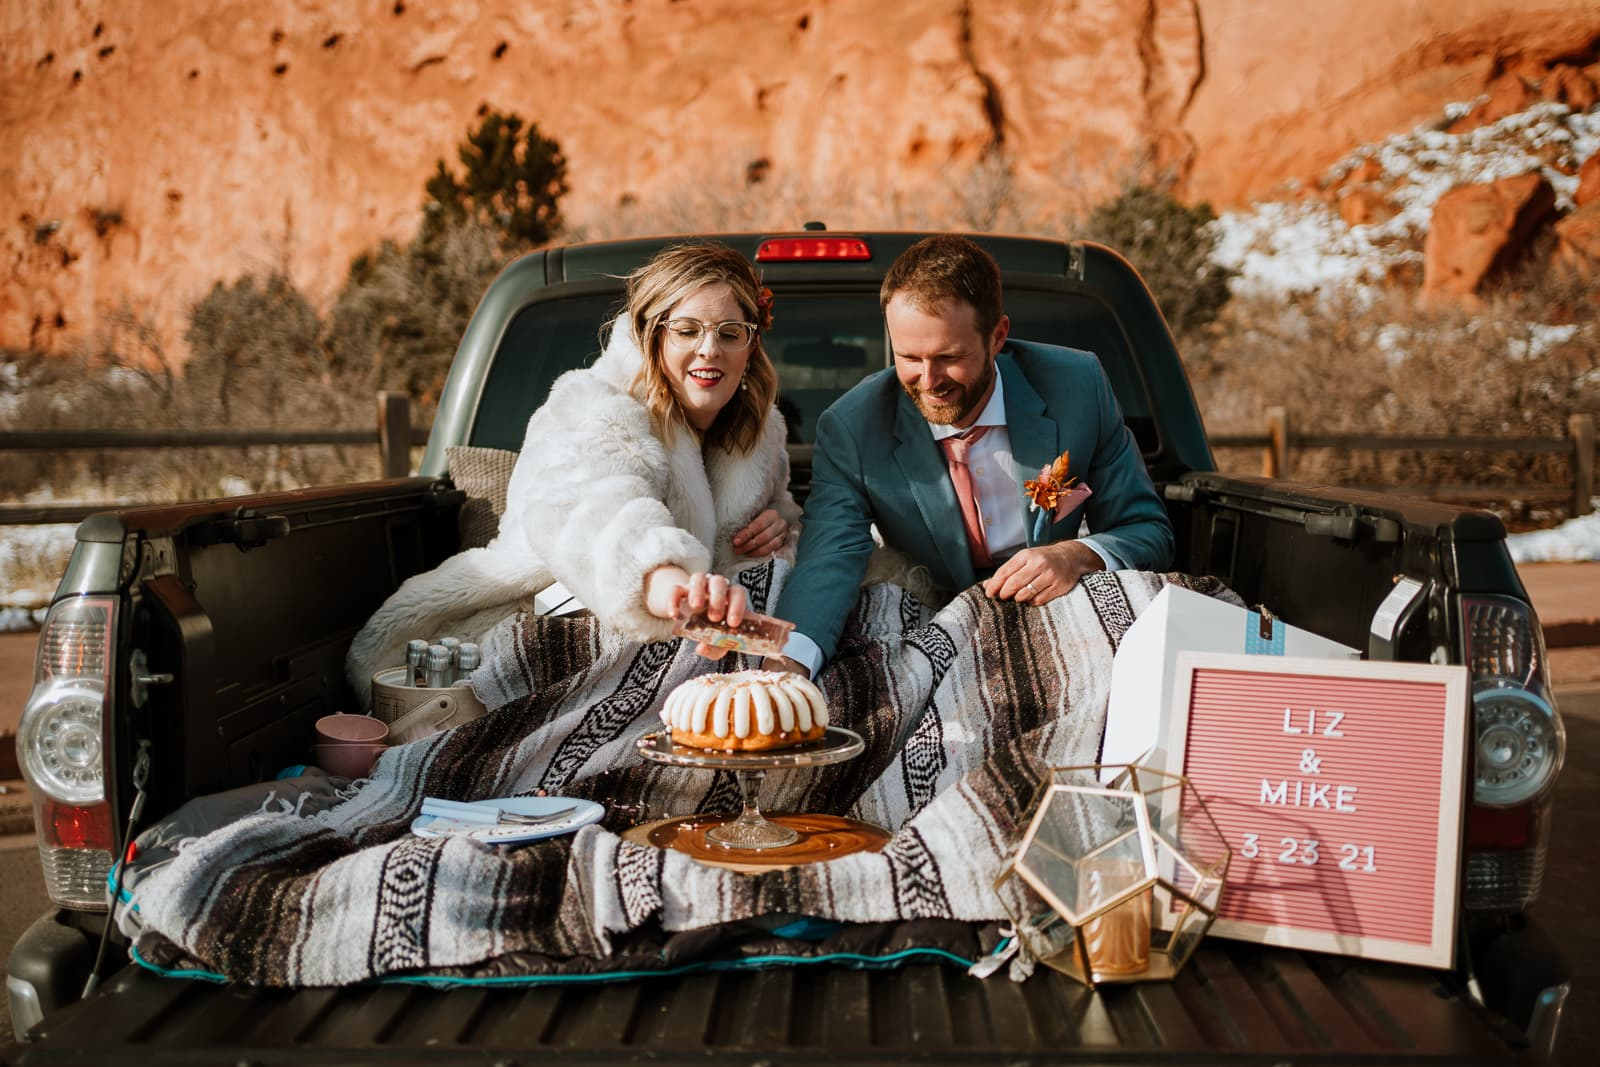 Bride and groom decorate their cake while enjoying their picnic in the back of their pickup truck at Garden of the Gods